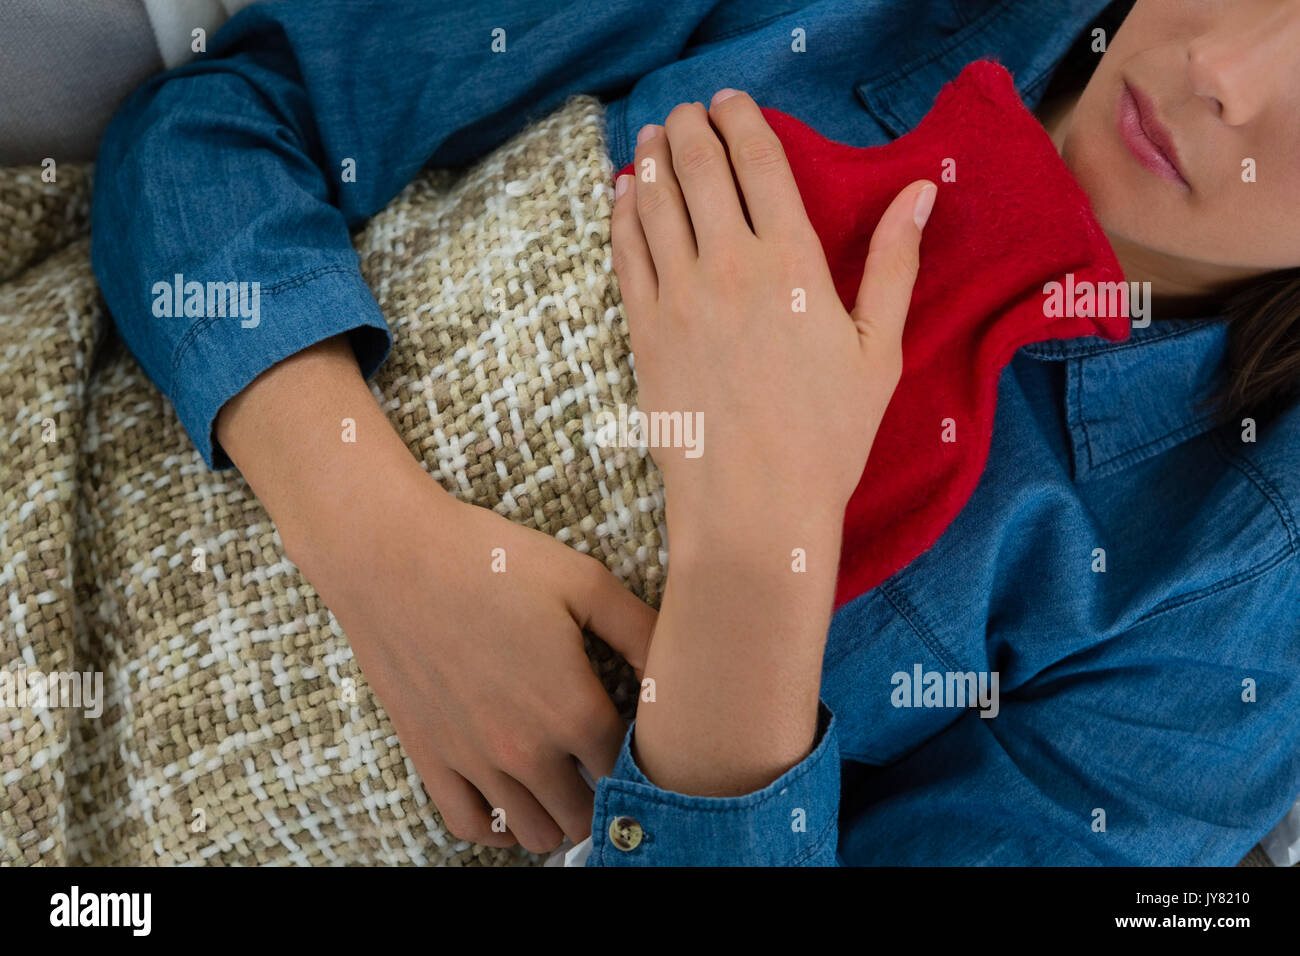 Mid section of woman with hot water bottle while sleeping on sofa at home - Stock Image